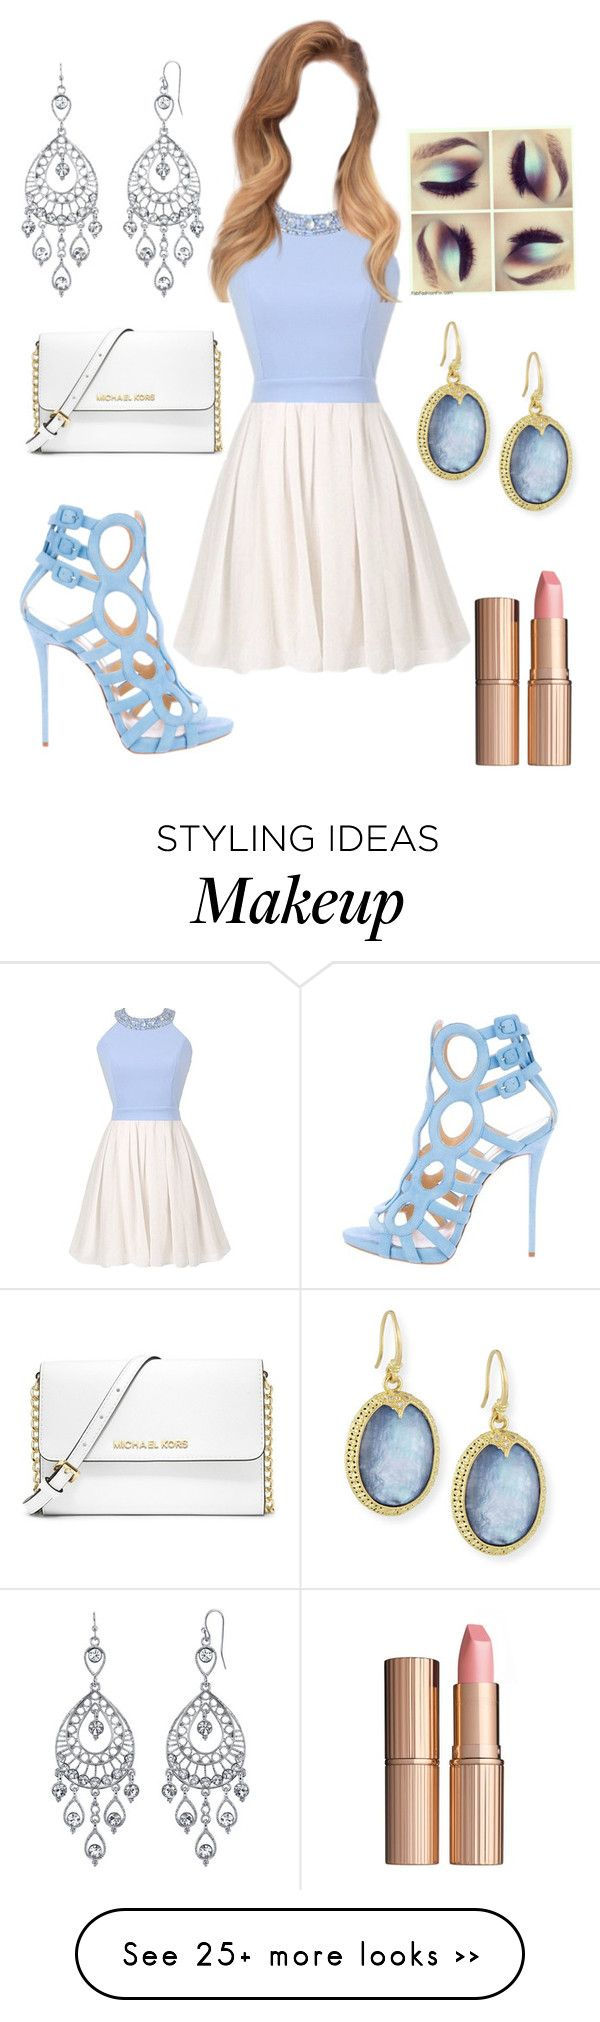 """""""Untitled #138"""" by scasey-2 on Polyvore featuring 1928, Armenta, Giuseppe Zanotti, MICHAEL Michael Kors and Charlotte Tilbury"""